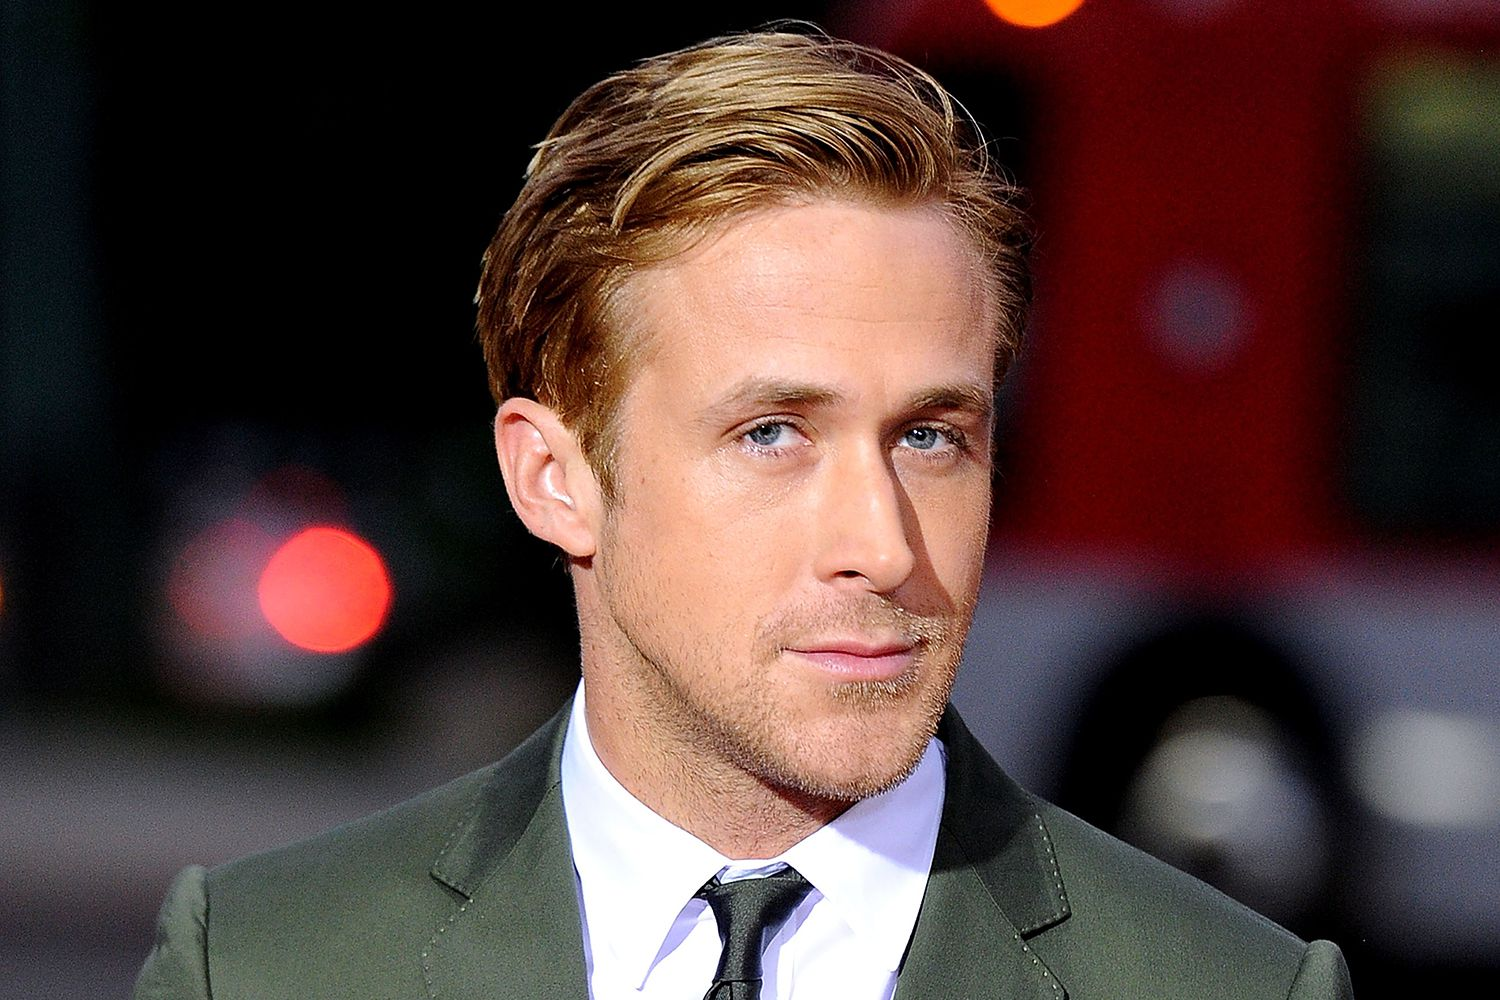 Hairstyles For Men According To Face Shape